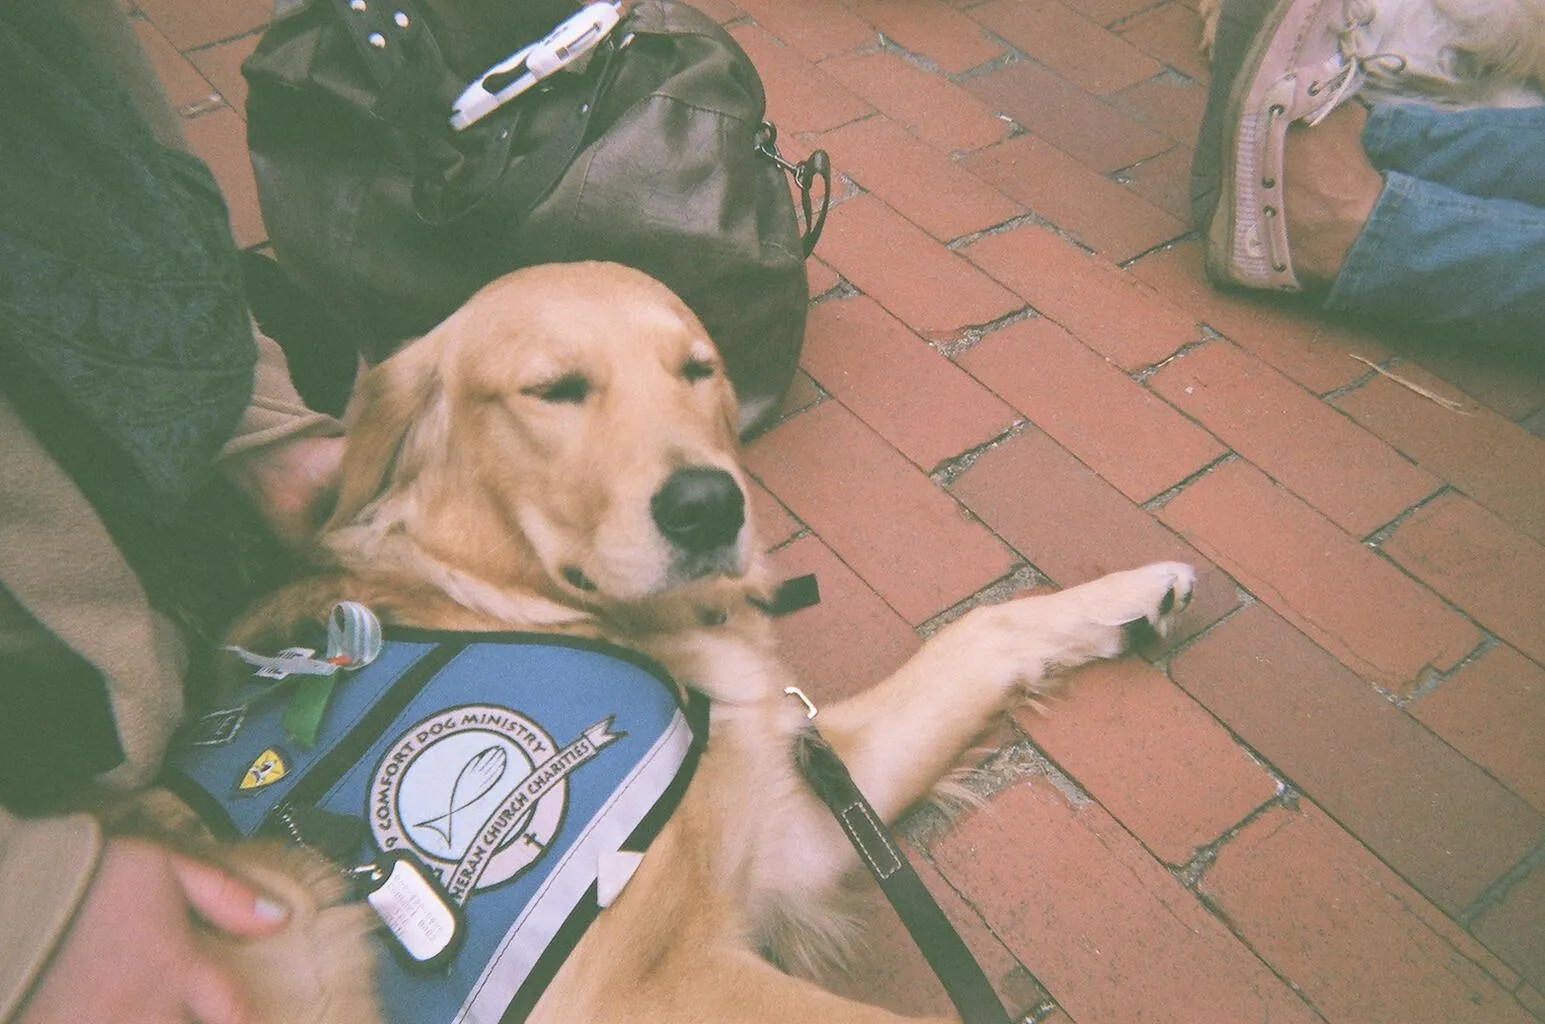 golden retriever Comfort Dog being petted by people